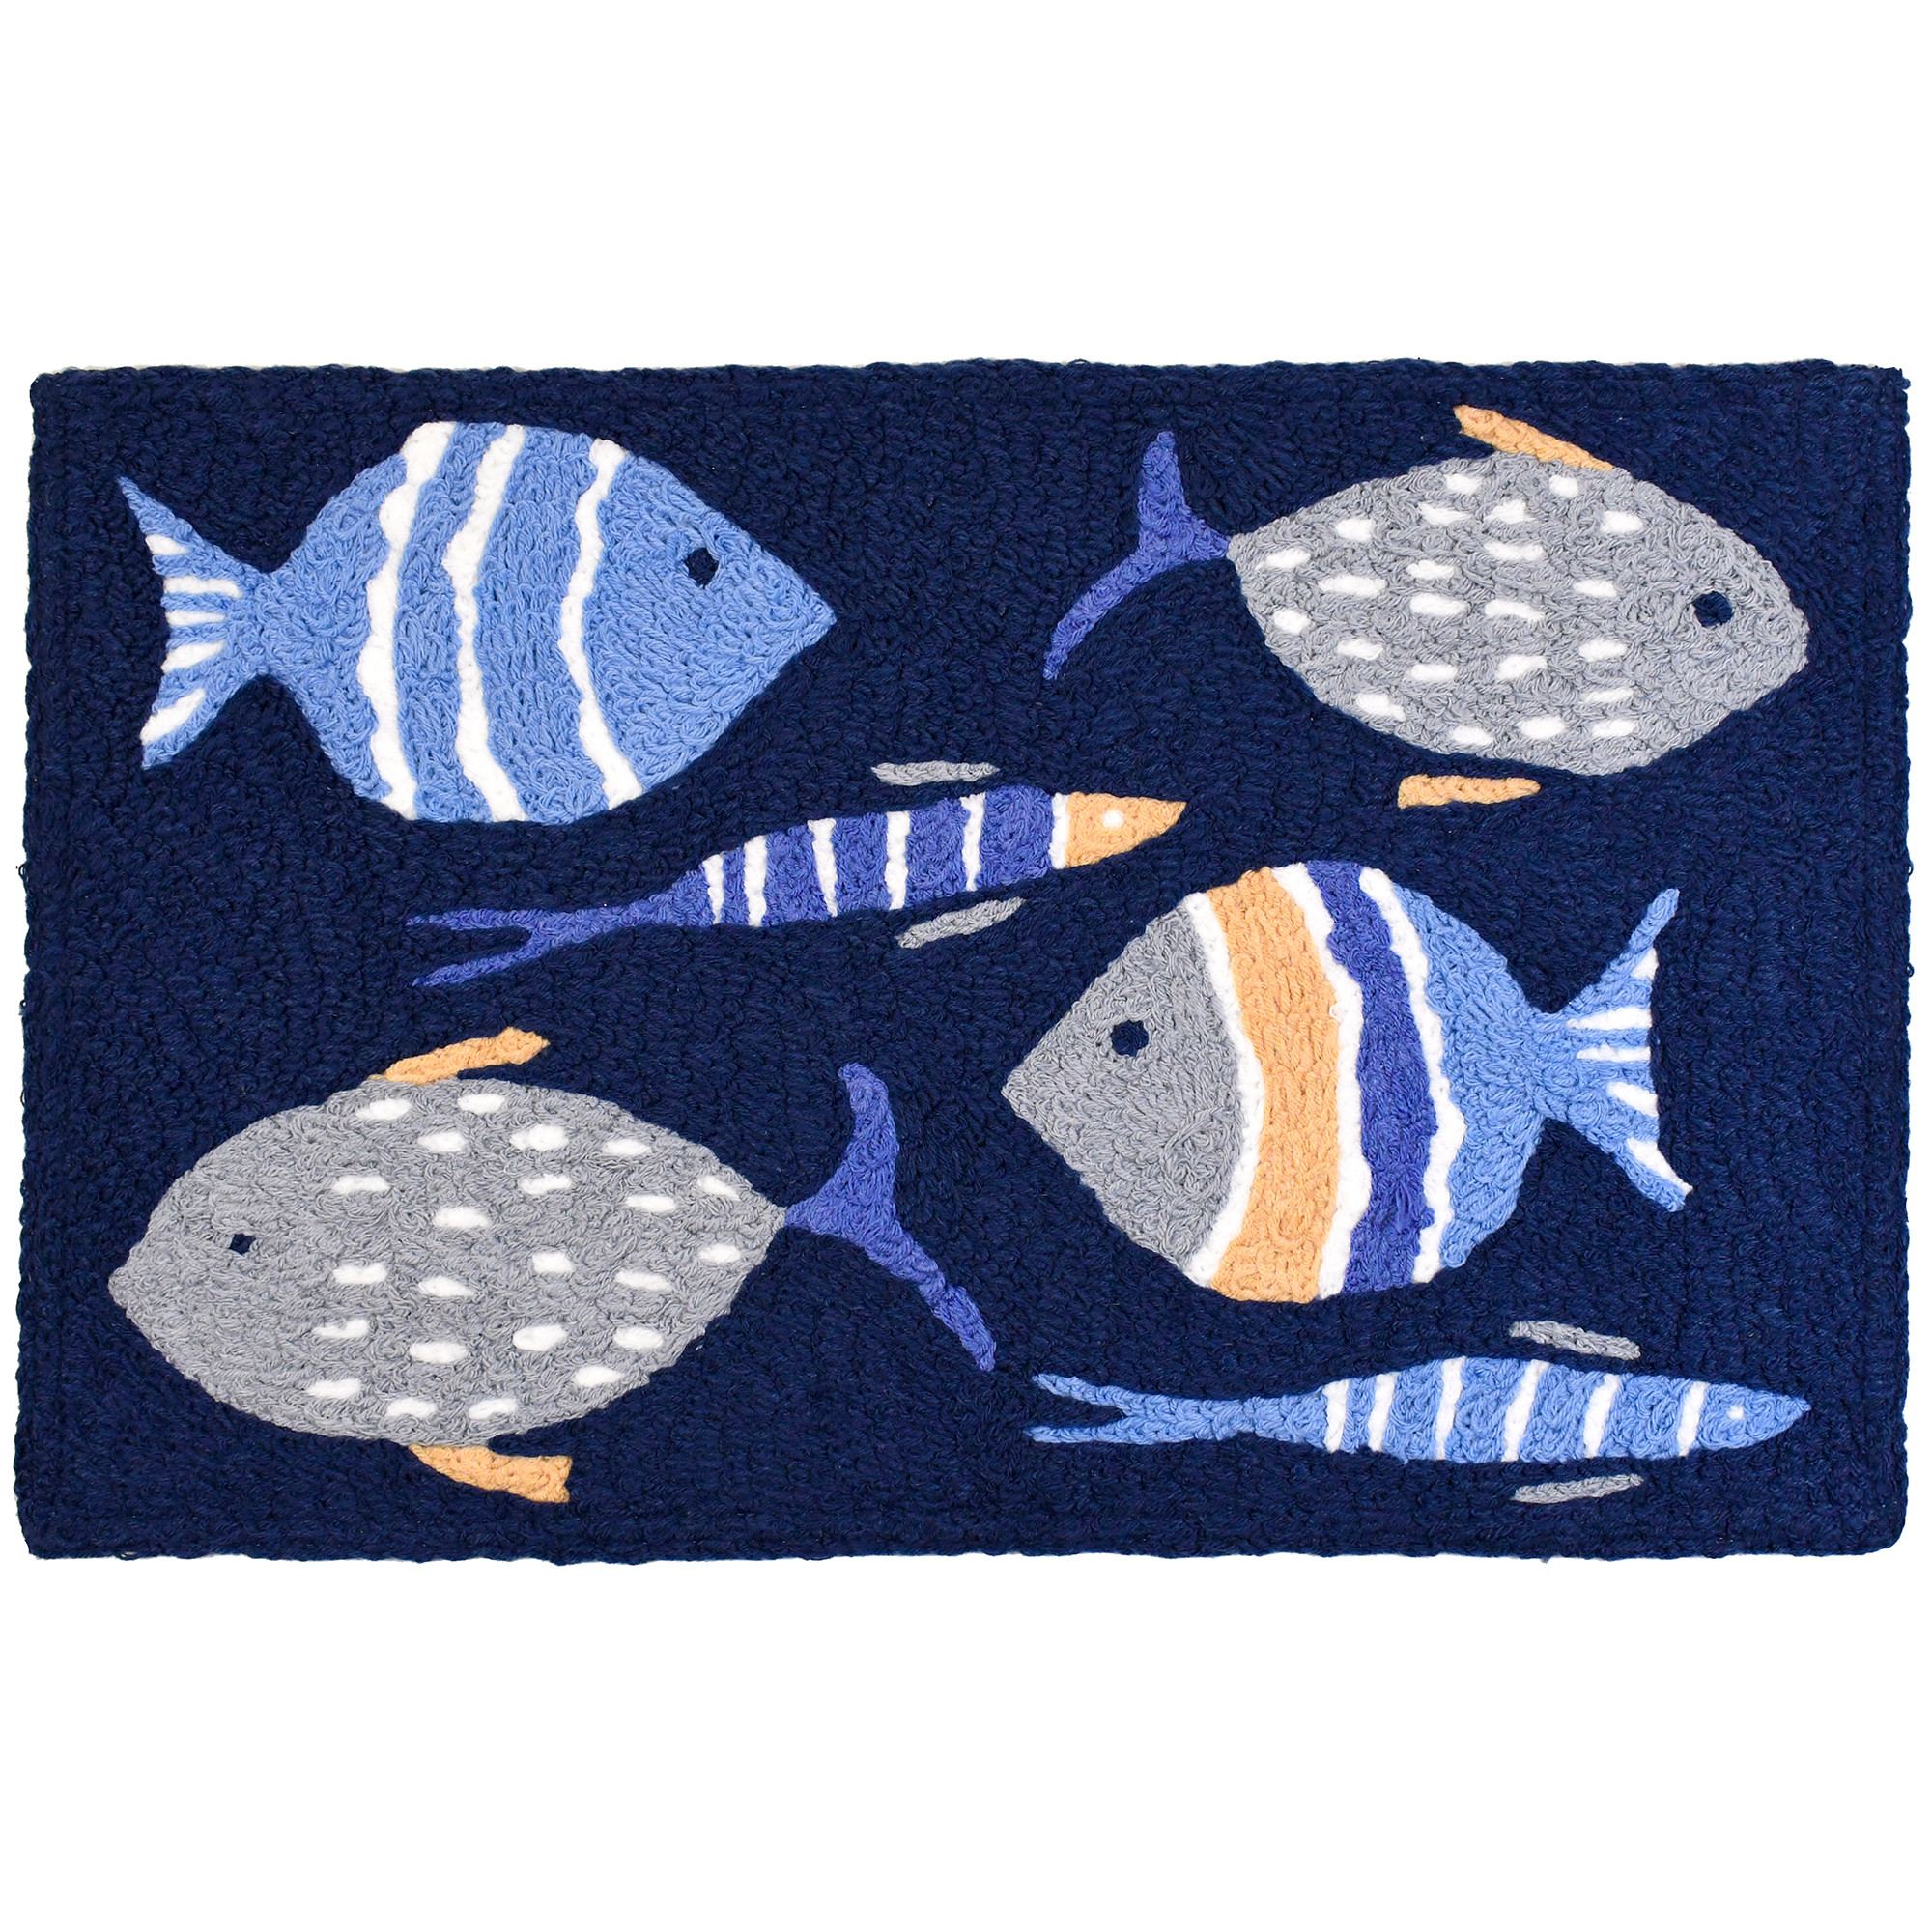 An assortment of fish and hues of blue bring underwater delight to this machine washable Jellybean® accent rug. Bring an undersea adventure inside or enjoy it on the patio with indoor/outdoor rug craftsmanship.